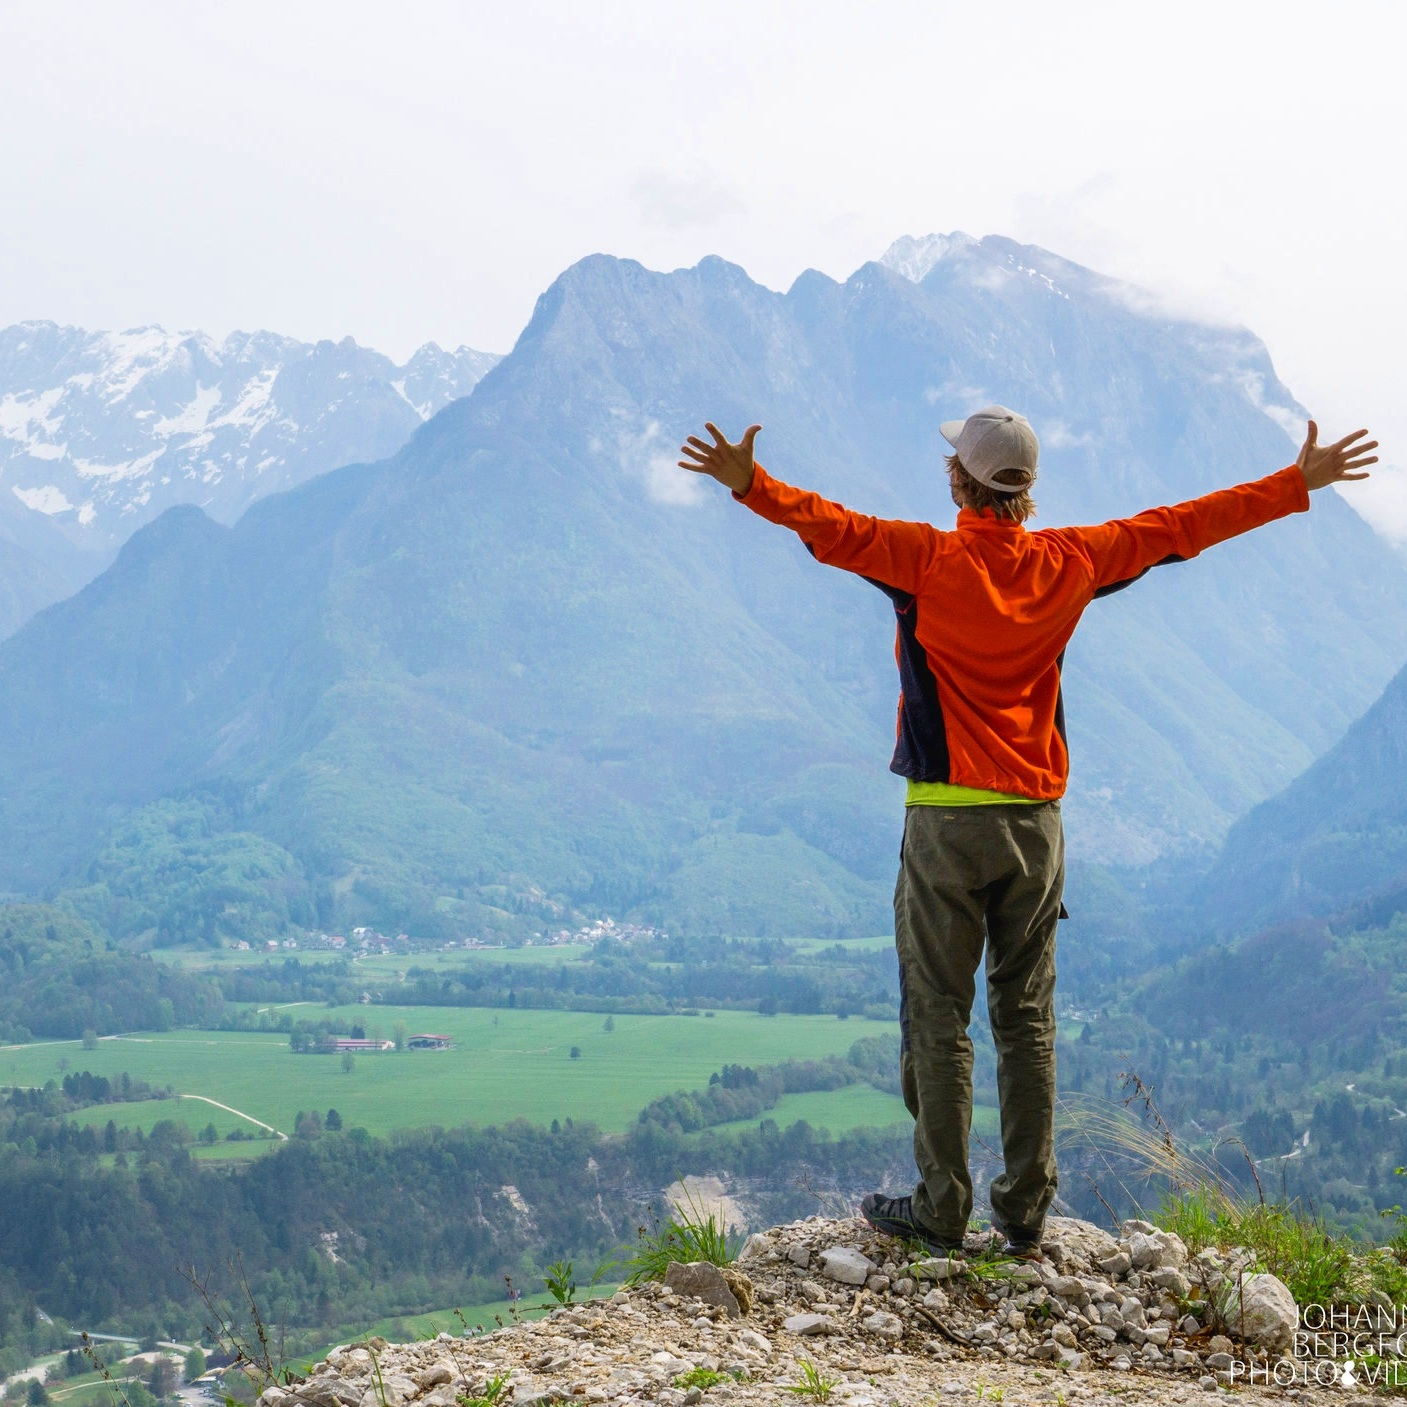 The Healthy - Do you want to live simple, healthy and explore by yourself? This is an option with a lot of independence and freedom.€1300 for one person.Read more